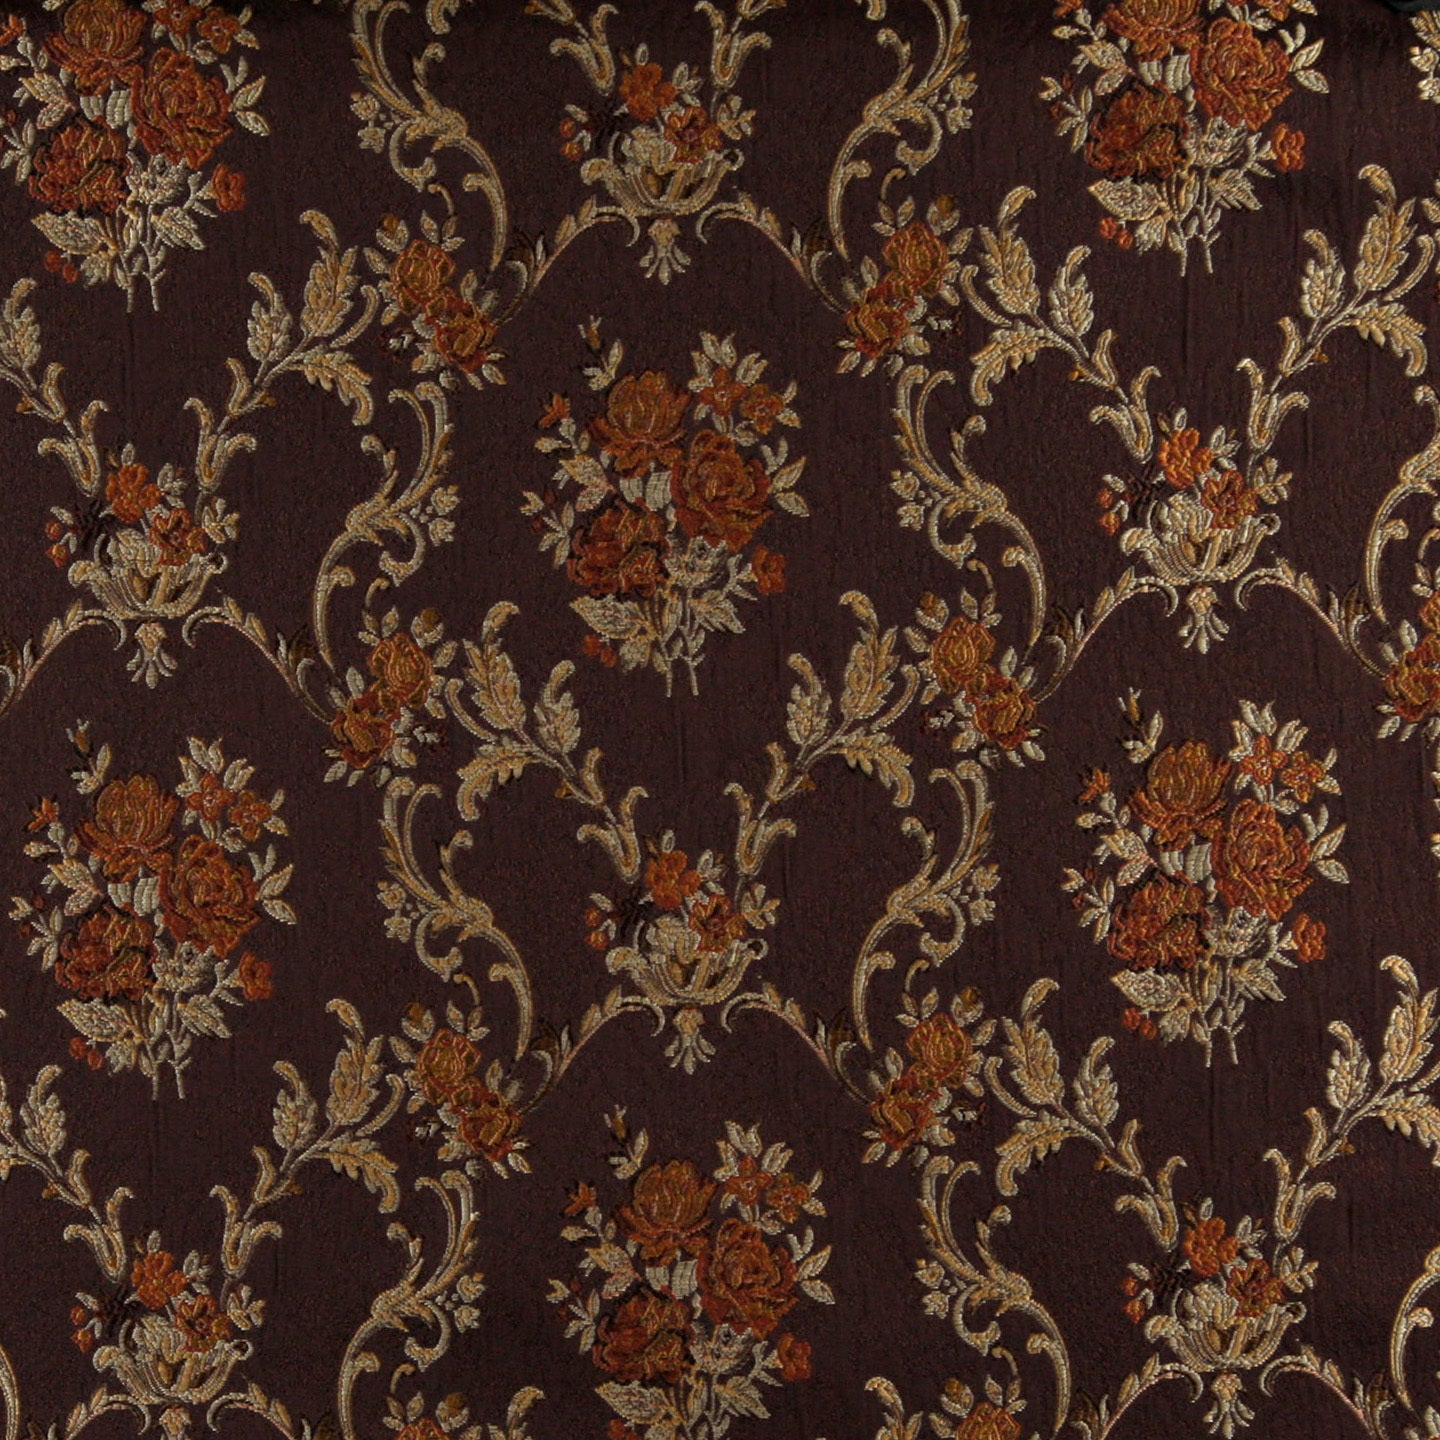 Shop A0014b Brown Gold Persimmon Ivory Floral Brocade Upholstery